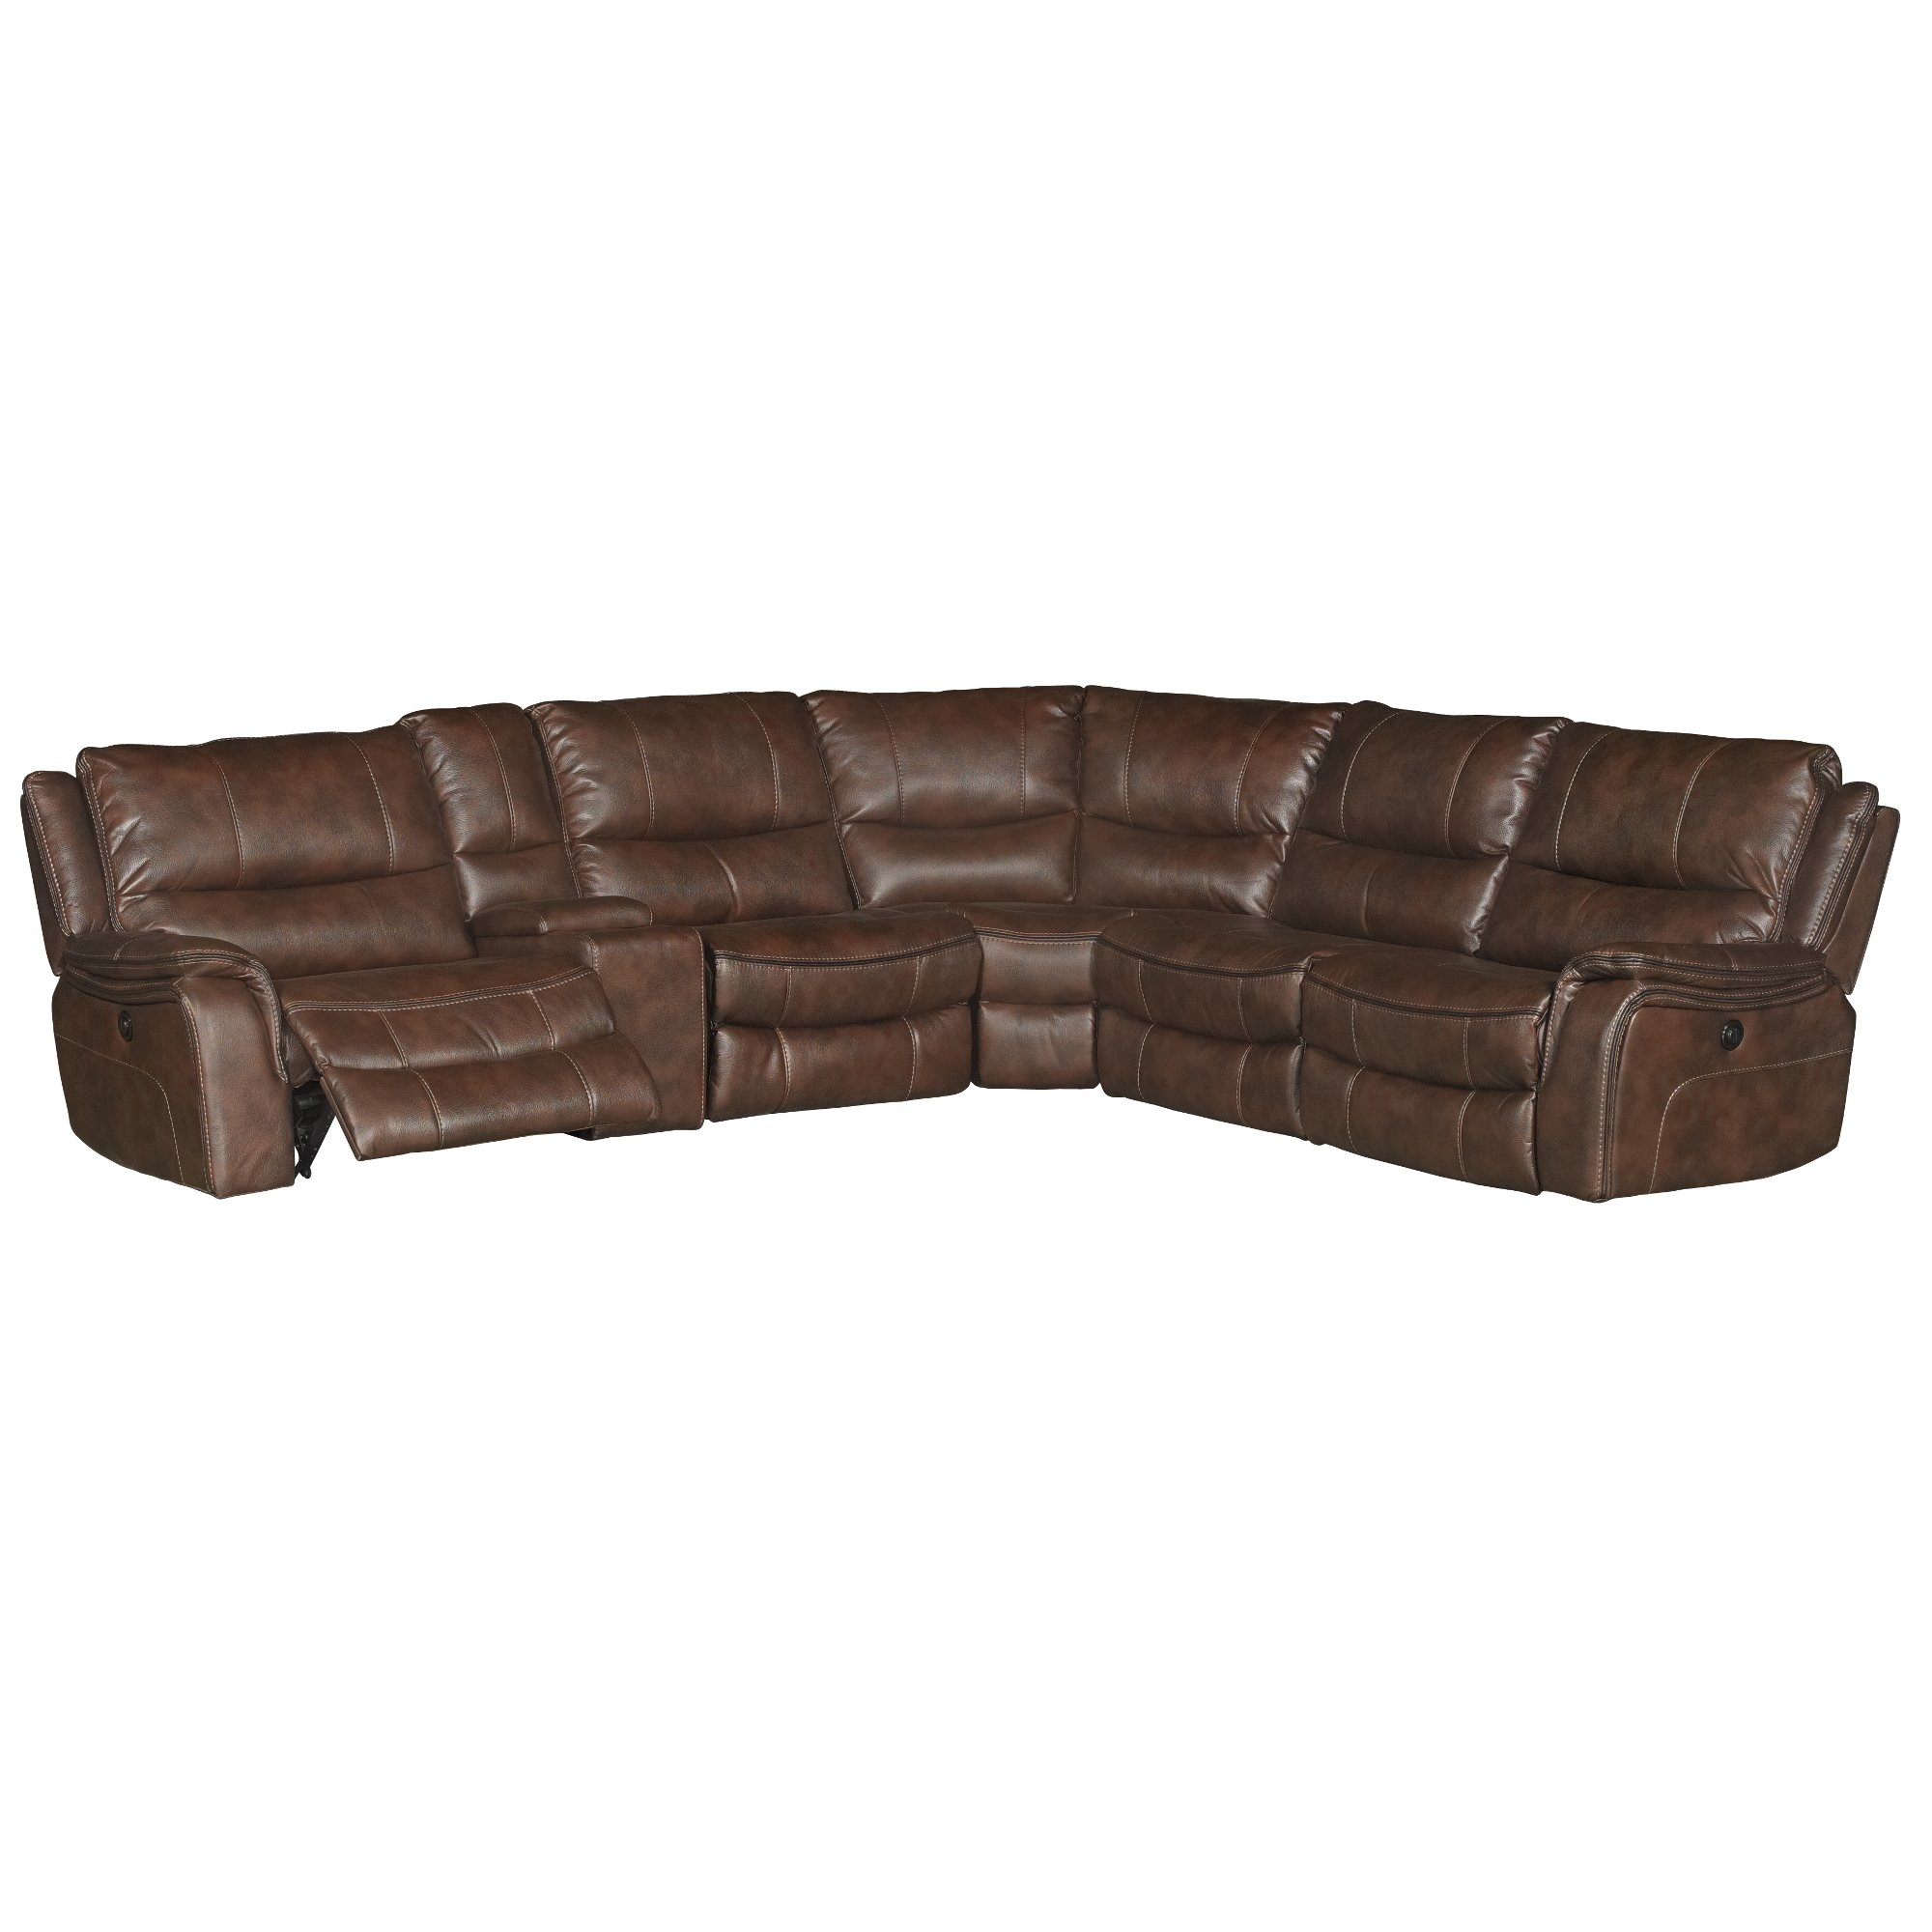 6 Piece Reclining Sectional Sofa | Baci Living Room Within Denali Charcoal Grey 6 Piece Reclining Sectionals With 2 Power Headrests (View 14 of 25)